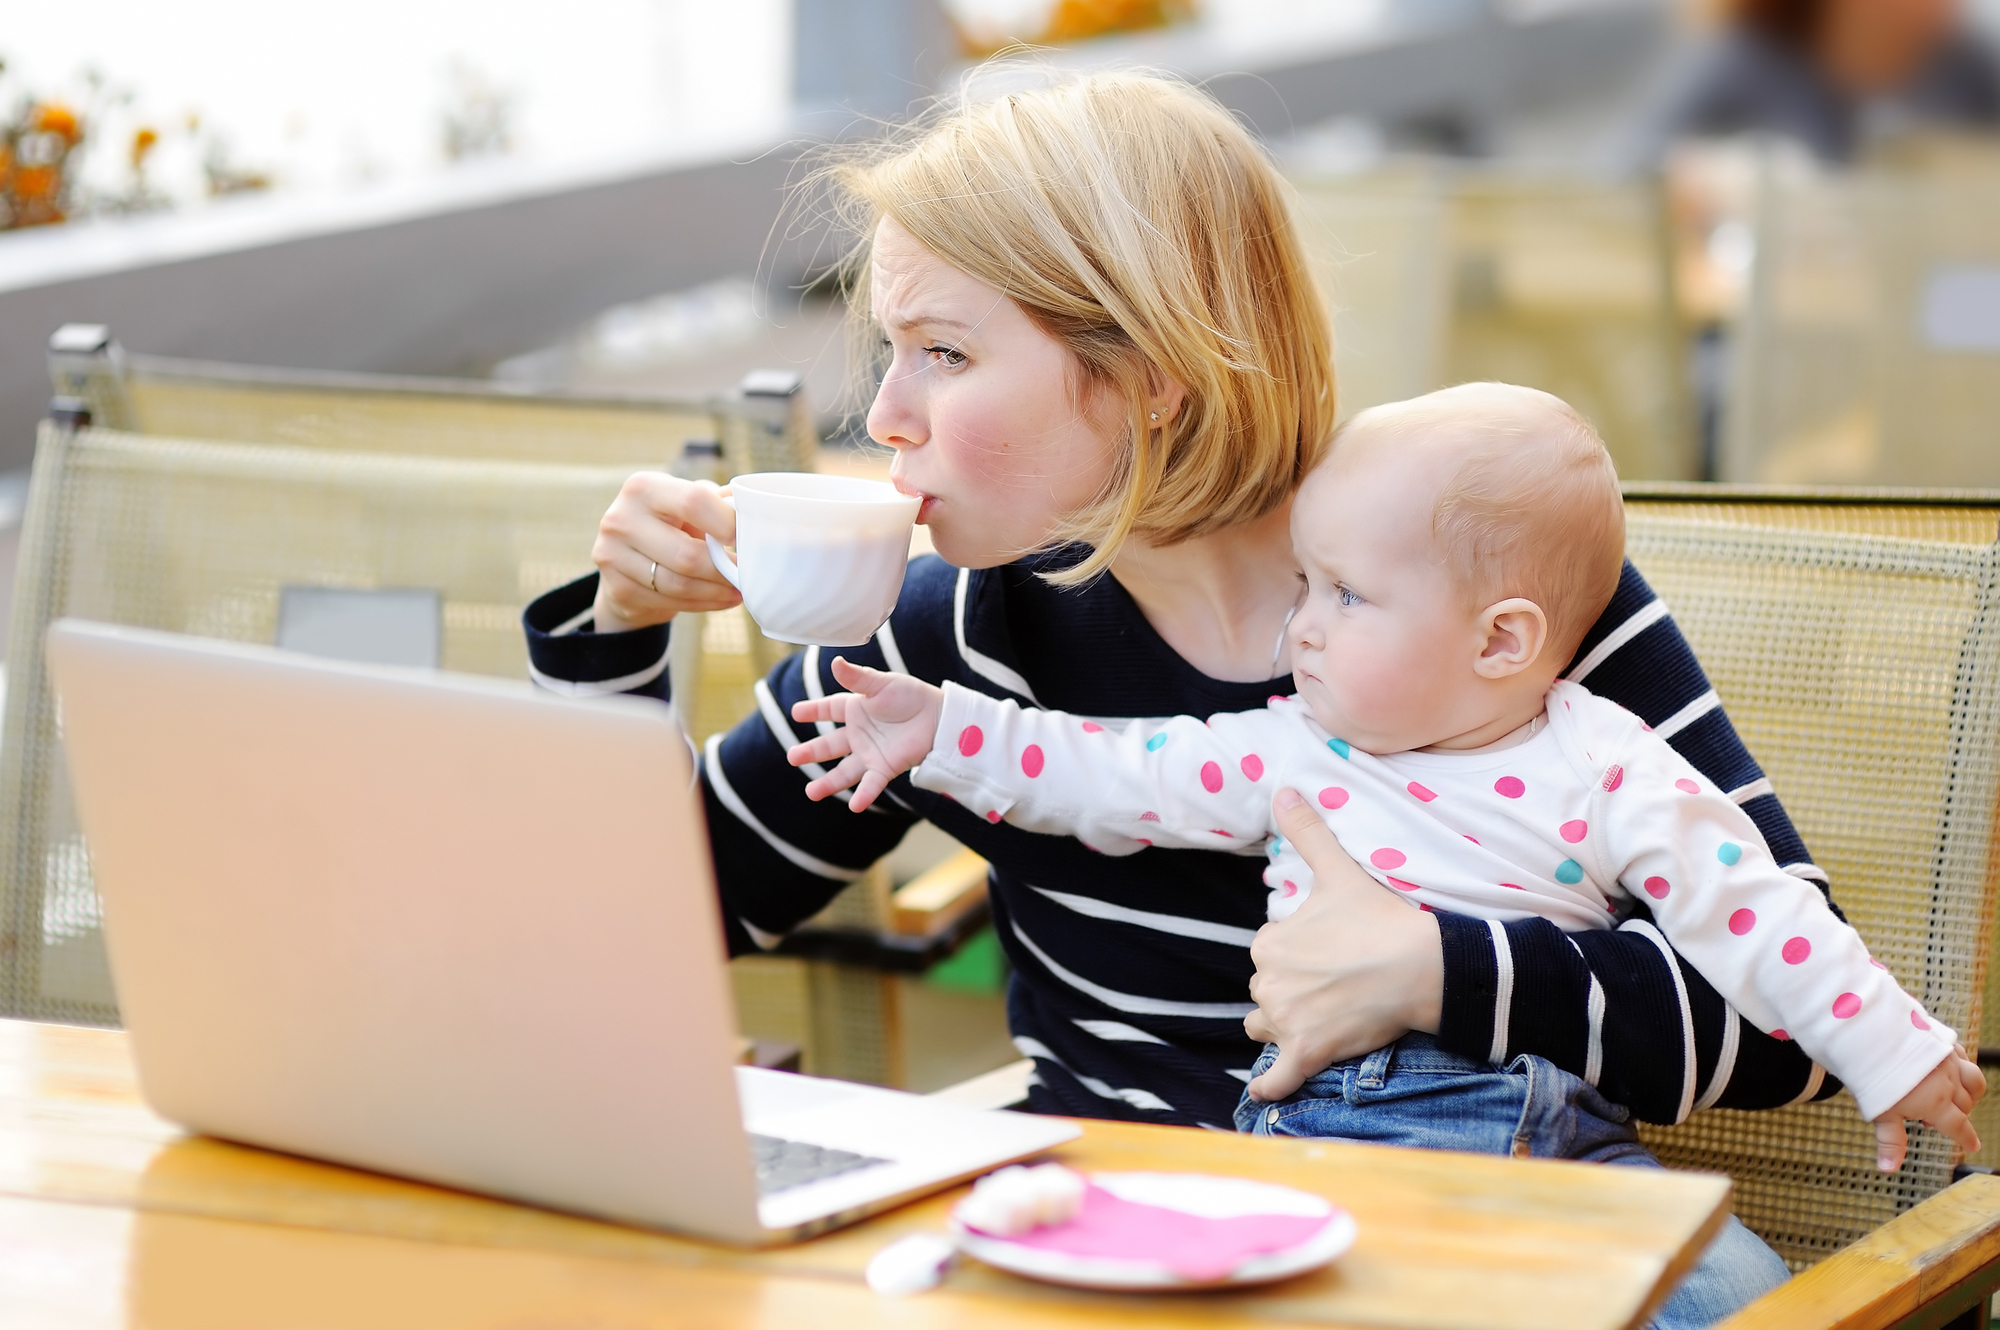 Busy young mother holding baby and trying to make money blogging from home.